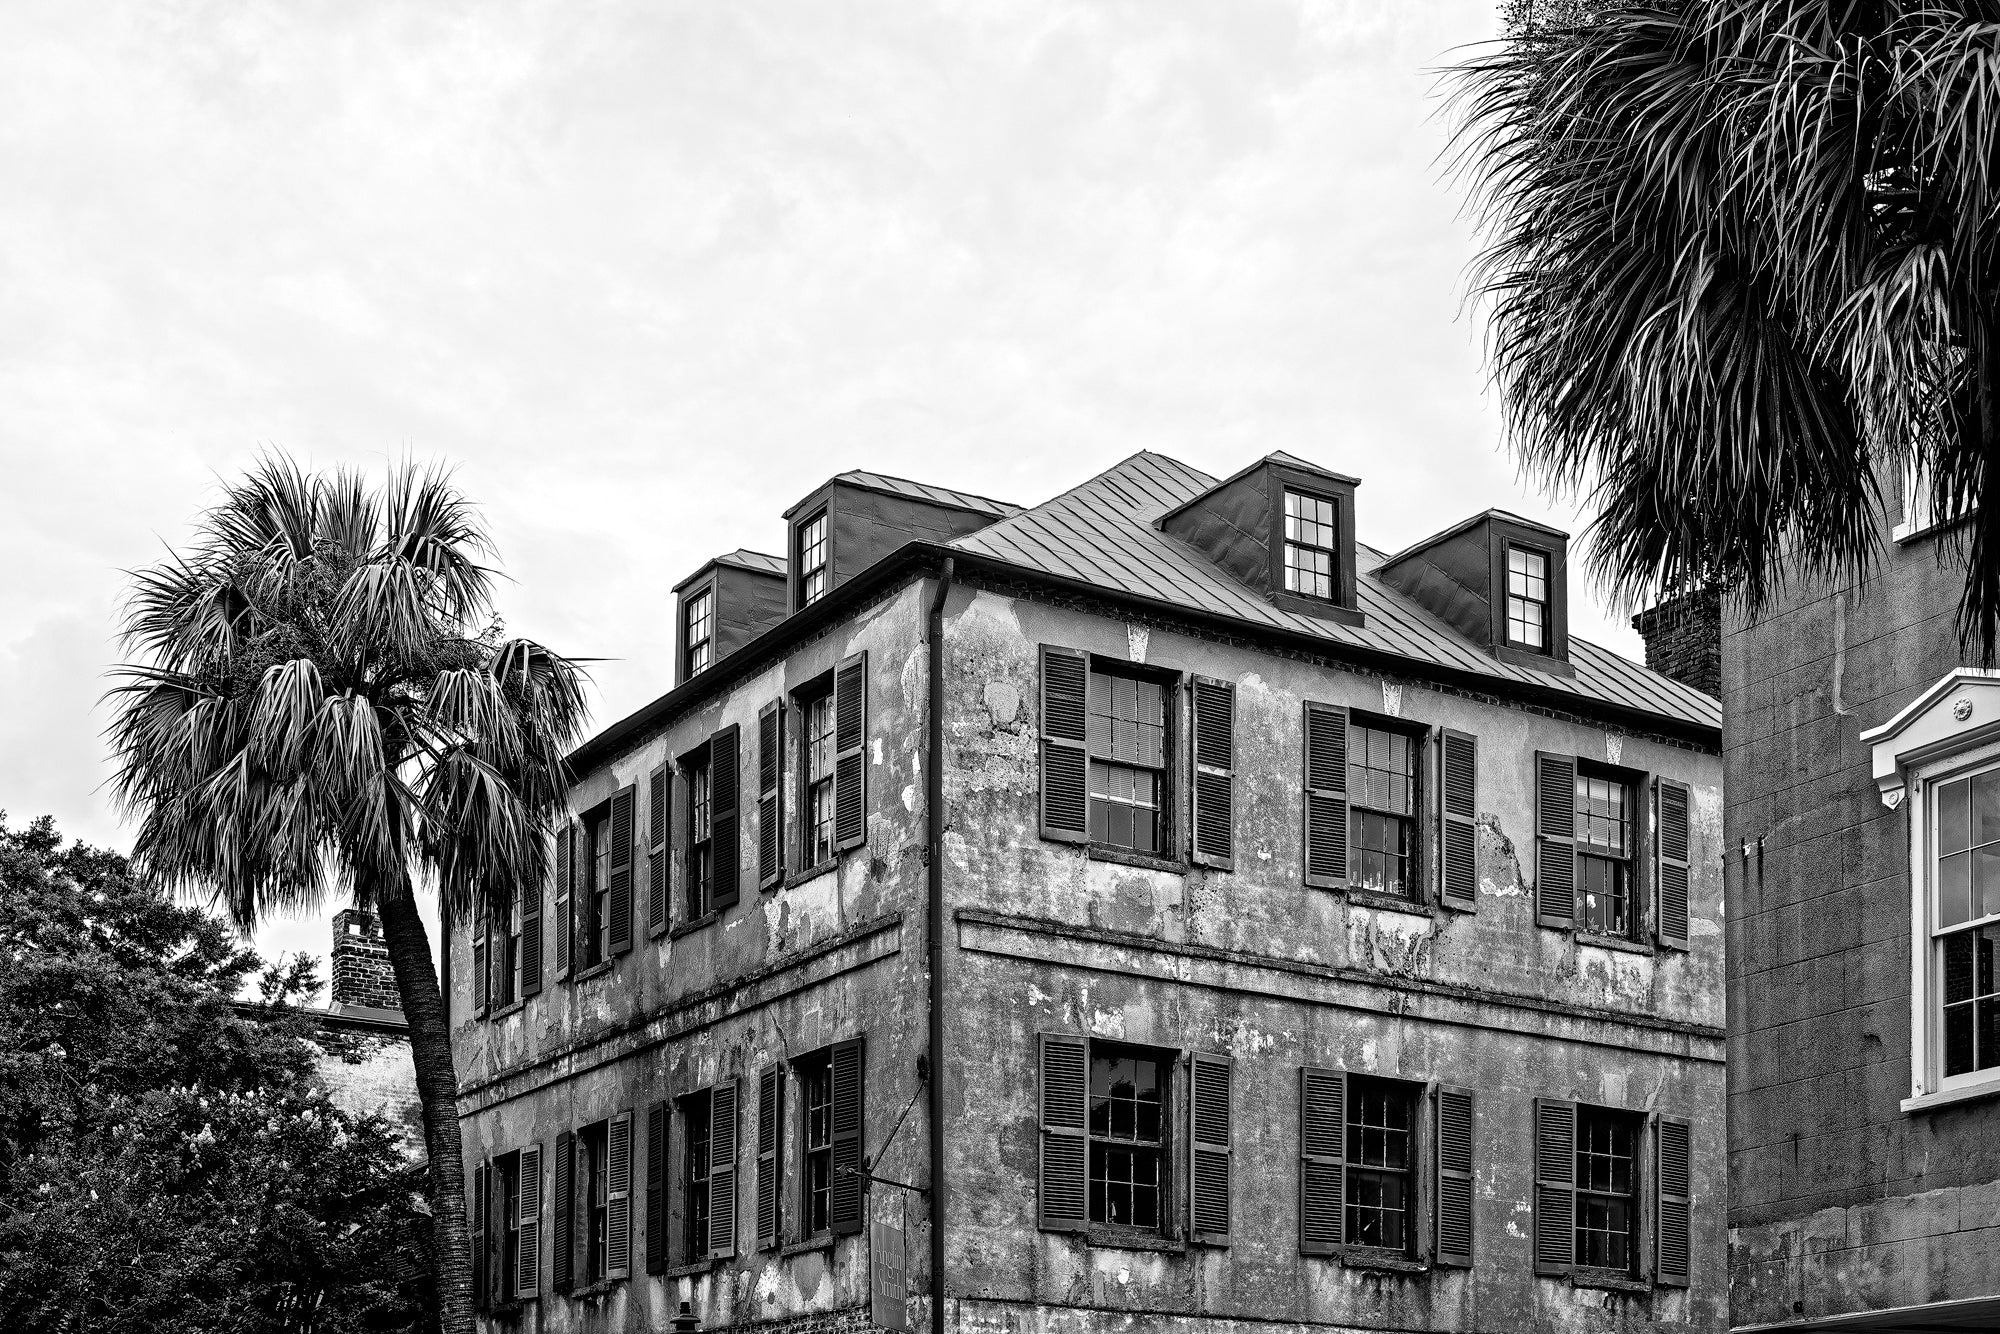 Charleston Historic Architecture - Black and White Photograph by Keith Dotson. Buy a print.